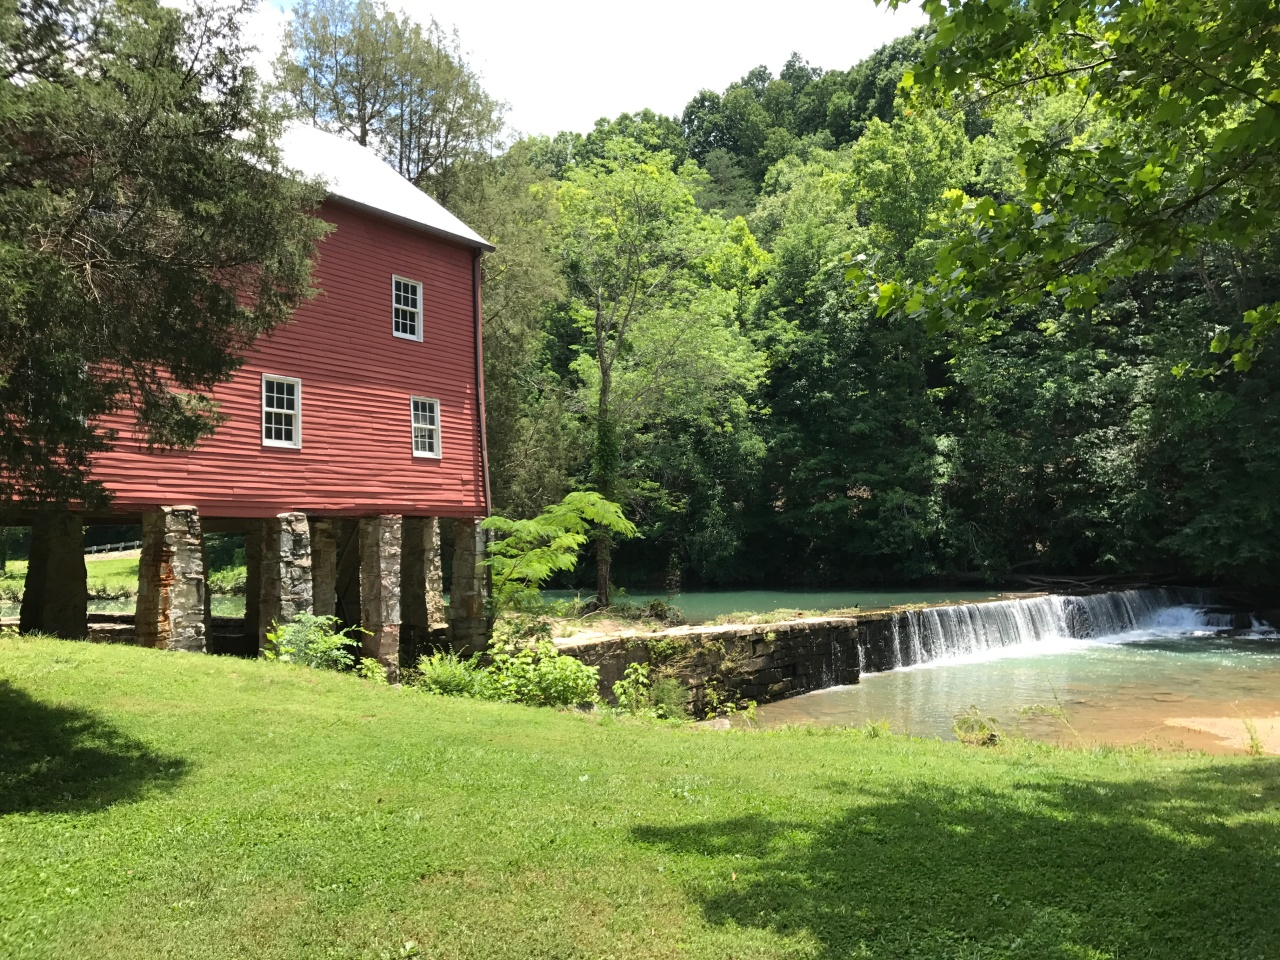 Sgt. Alvin C. York State Historic Park – Tennessee